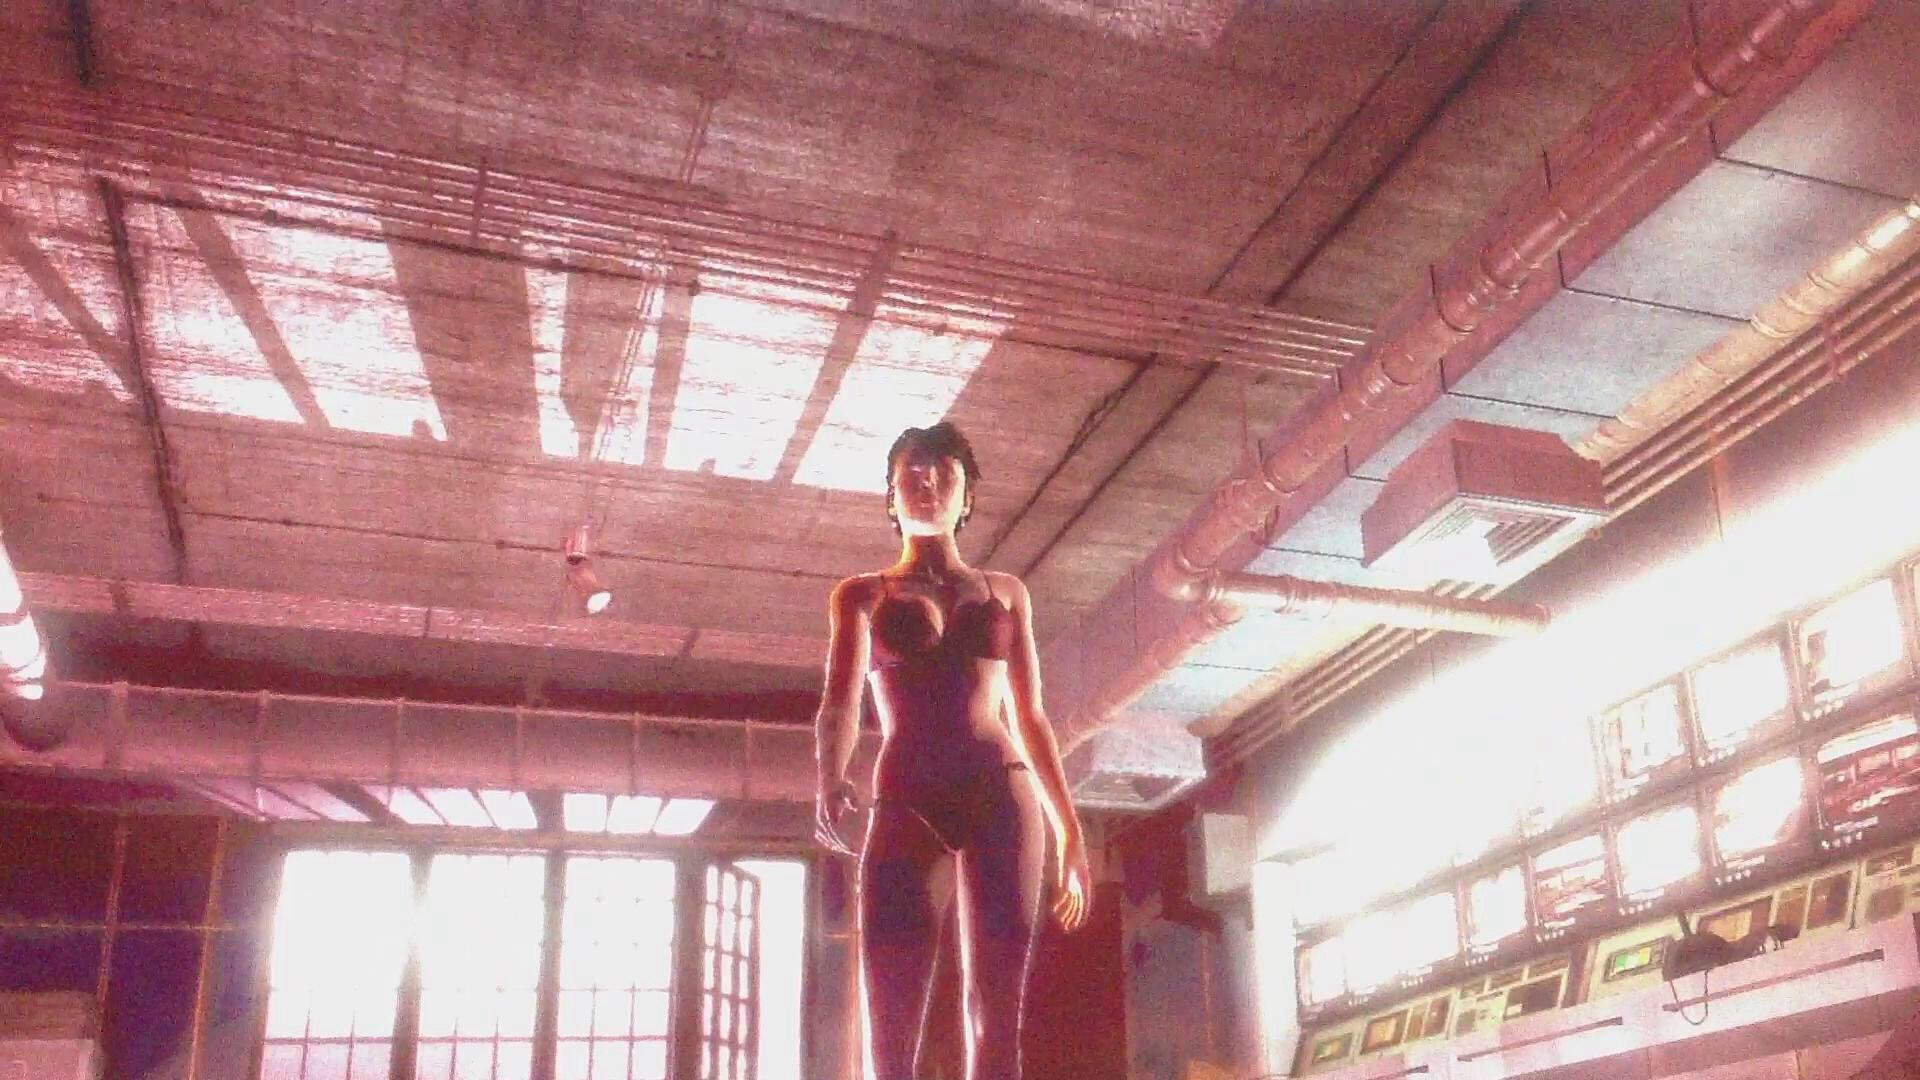 Hitman absolution nude #187 mods naked pictures